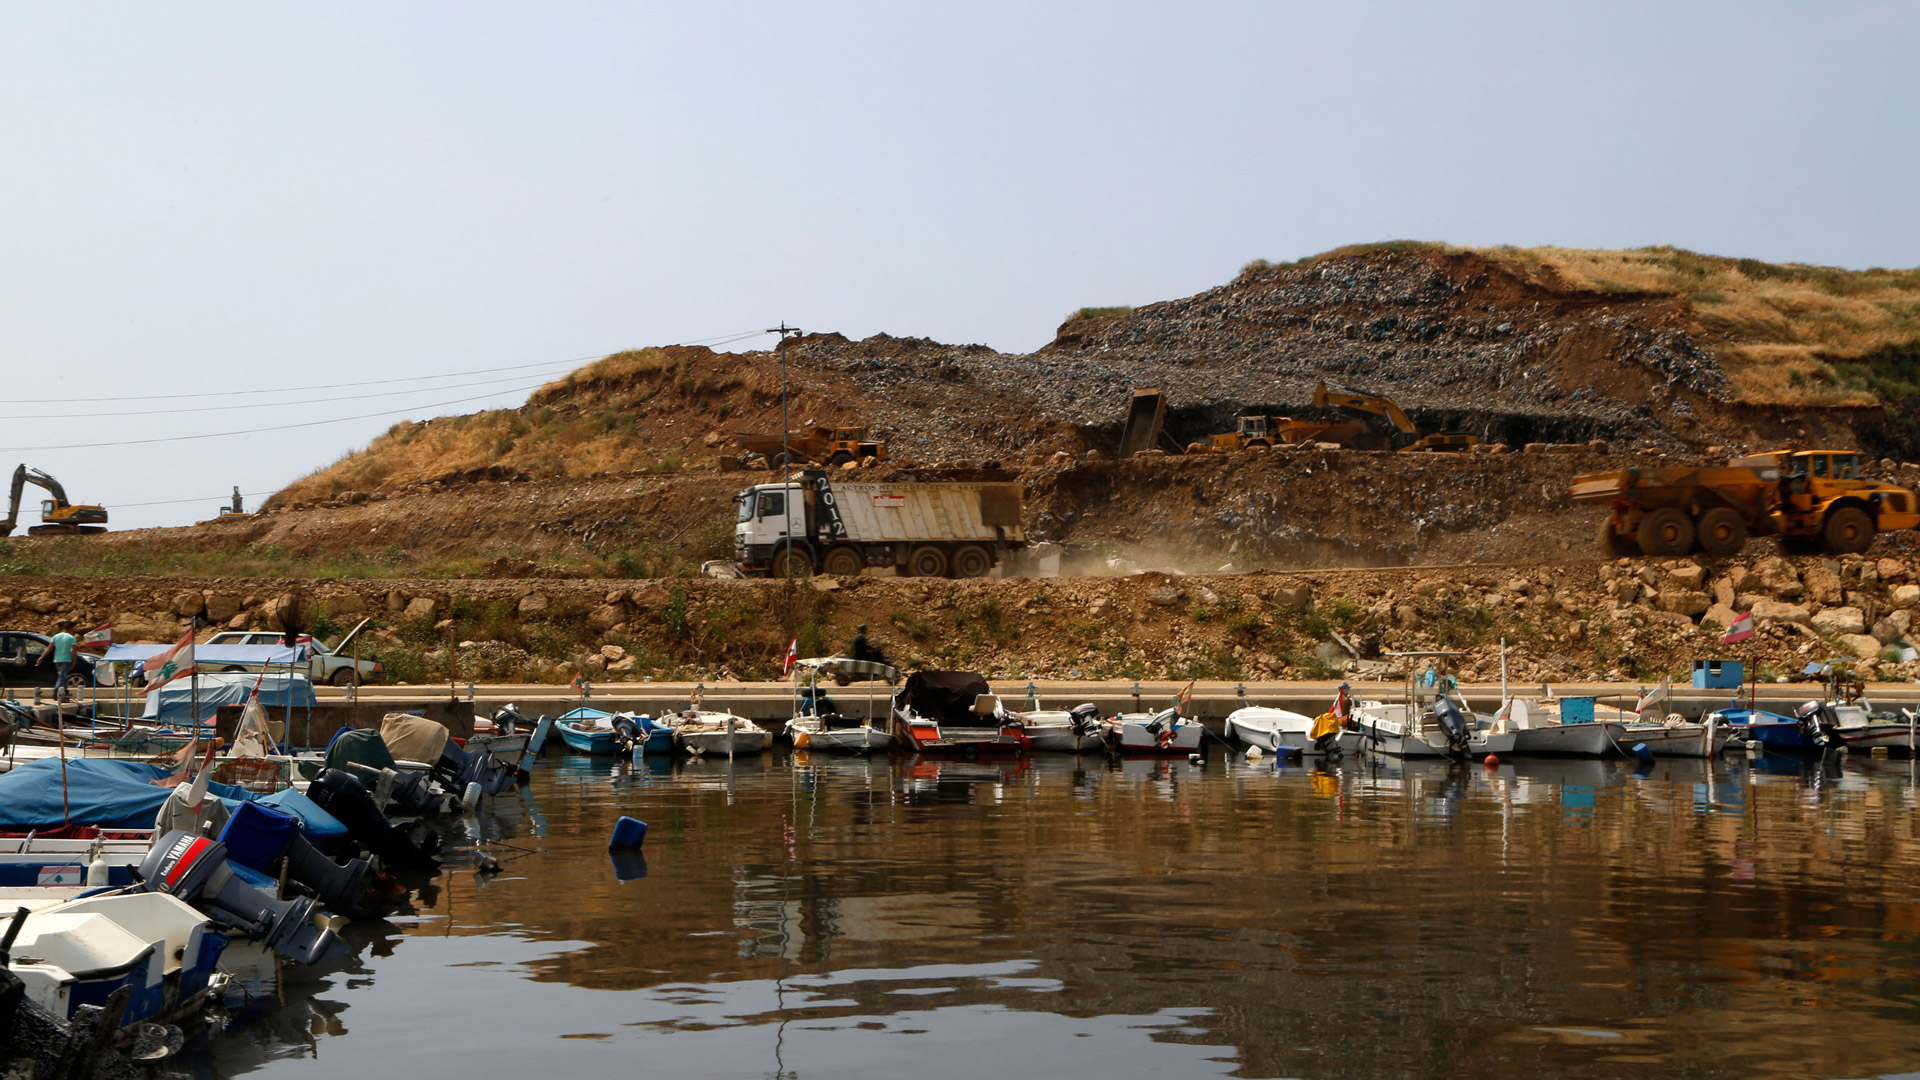 A truck hauls waste at the Bourj Hammoud landfill site. Untreated waste is being dumped into the sea as a part of the land reclamation project.